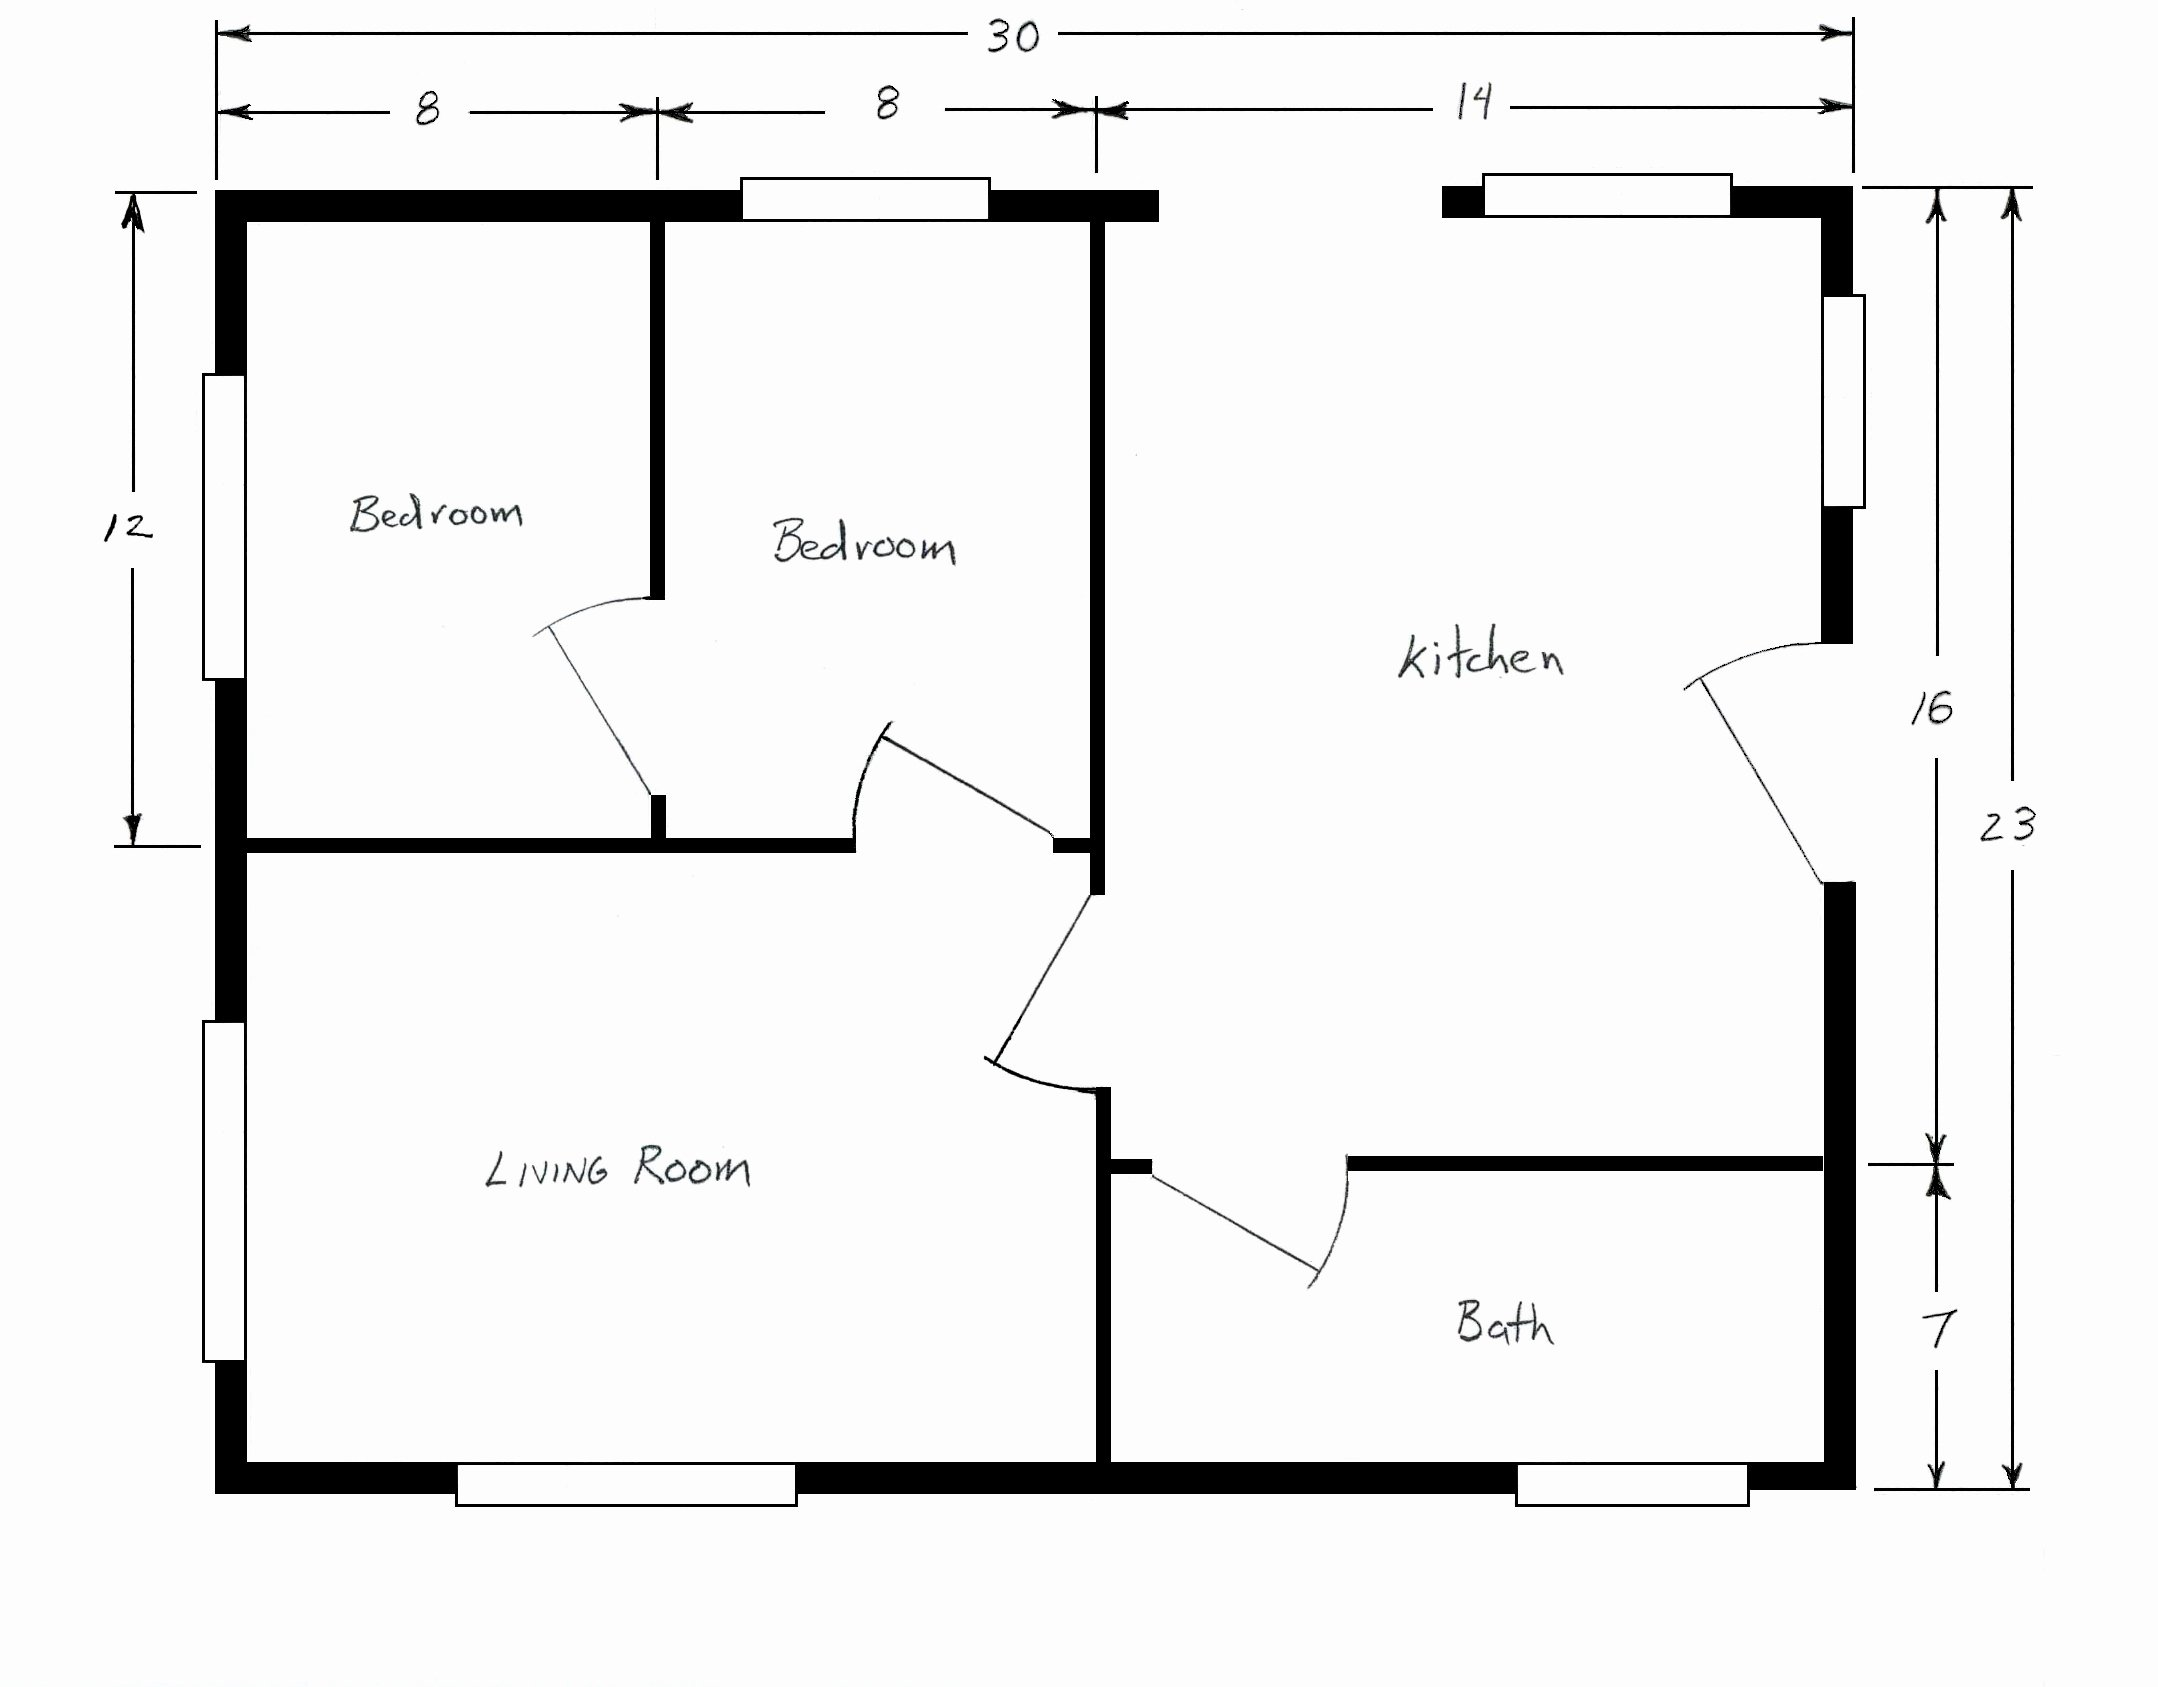 Floor Plan Templates Free Luxury Blank House Floor Plan Template Details Floorplan House